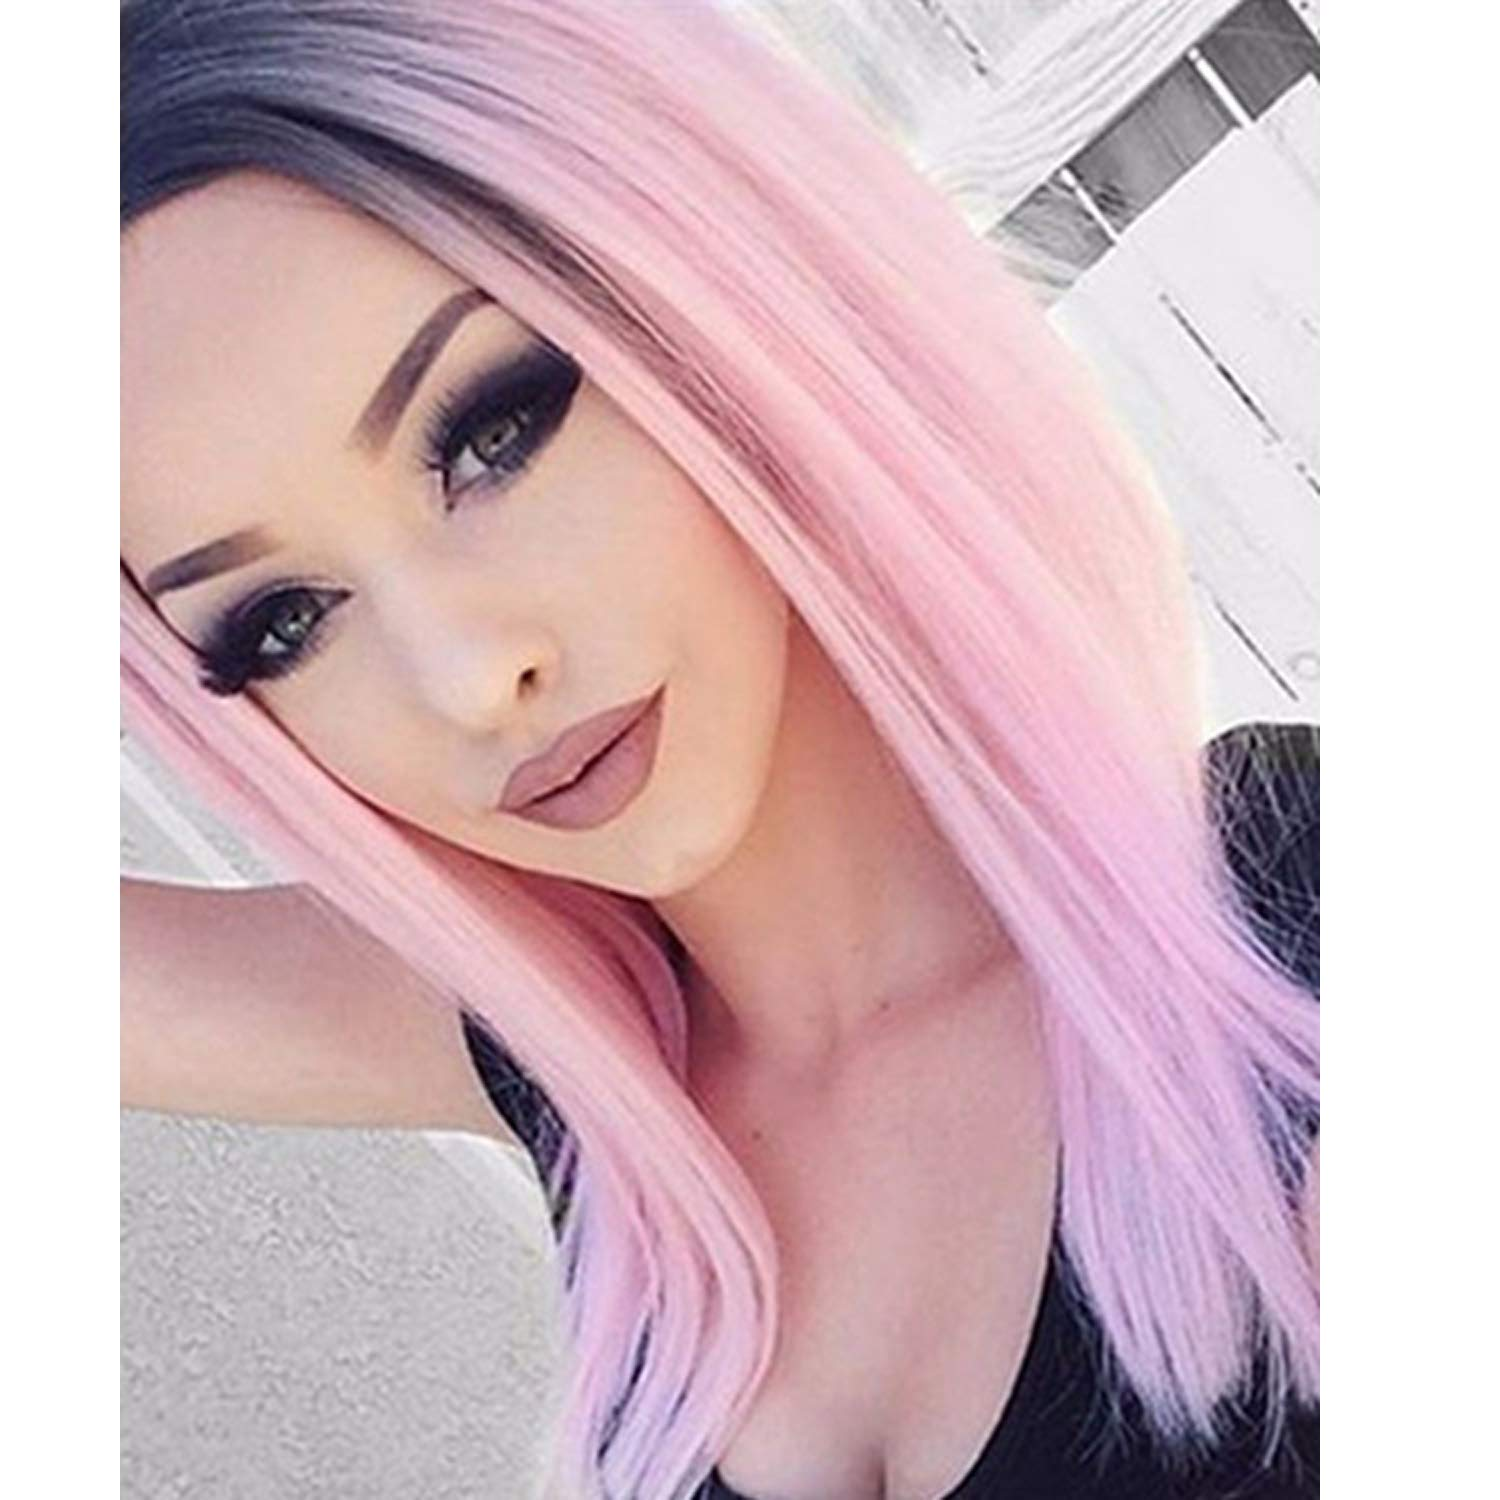 GNIMEGIL High Temperature Fiber Long Straight Hair Ombre Wigs Black into Pink Cosplay Costume Wigs for Women Power Puff Girl Pink Fancy Dress Party Wig (Wig Head Circumference Size is 20-24inches)